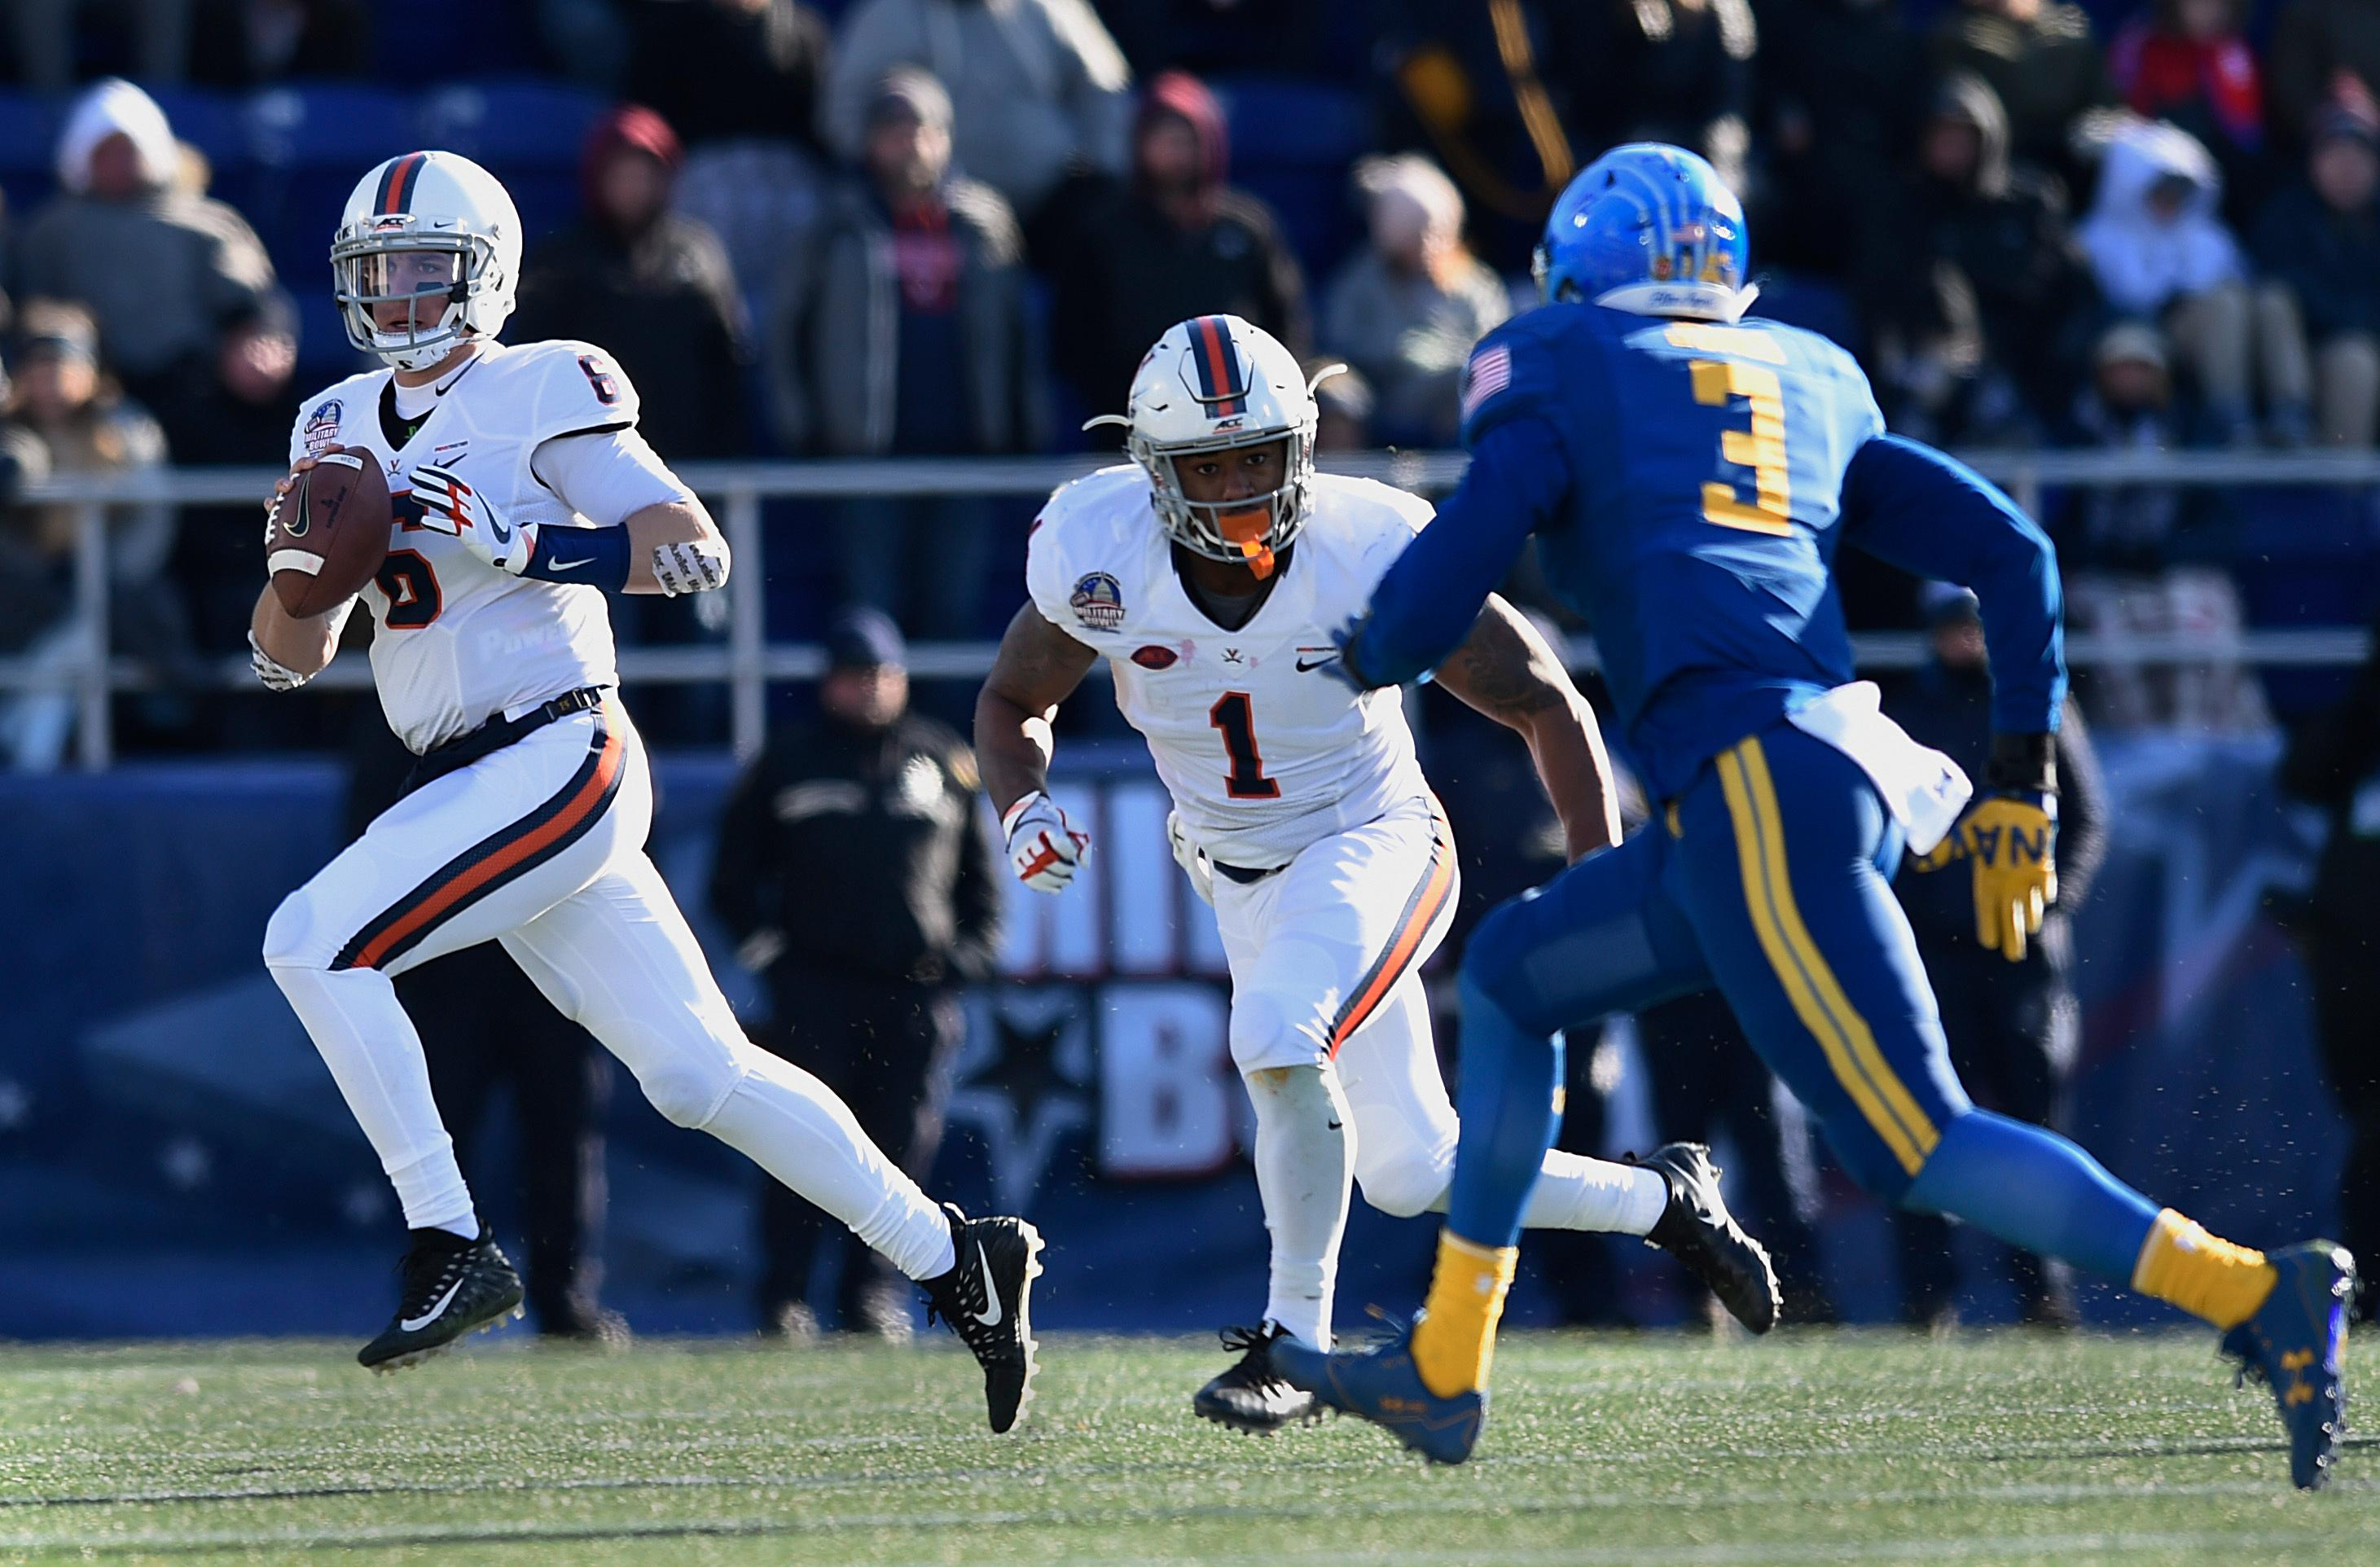 Virginia quarterback Kurt Benkert looks to pass against Navy in the first half of the Military Bowl NCAA college football game, Thursday, Dec. 28, 2017, in Annapolis, Md. (AP Photo/Gail Burton)